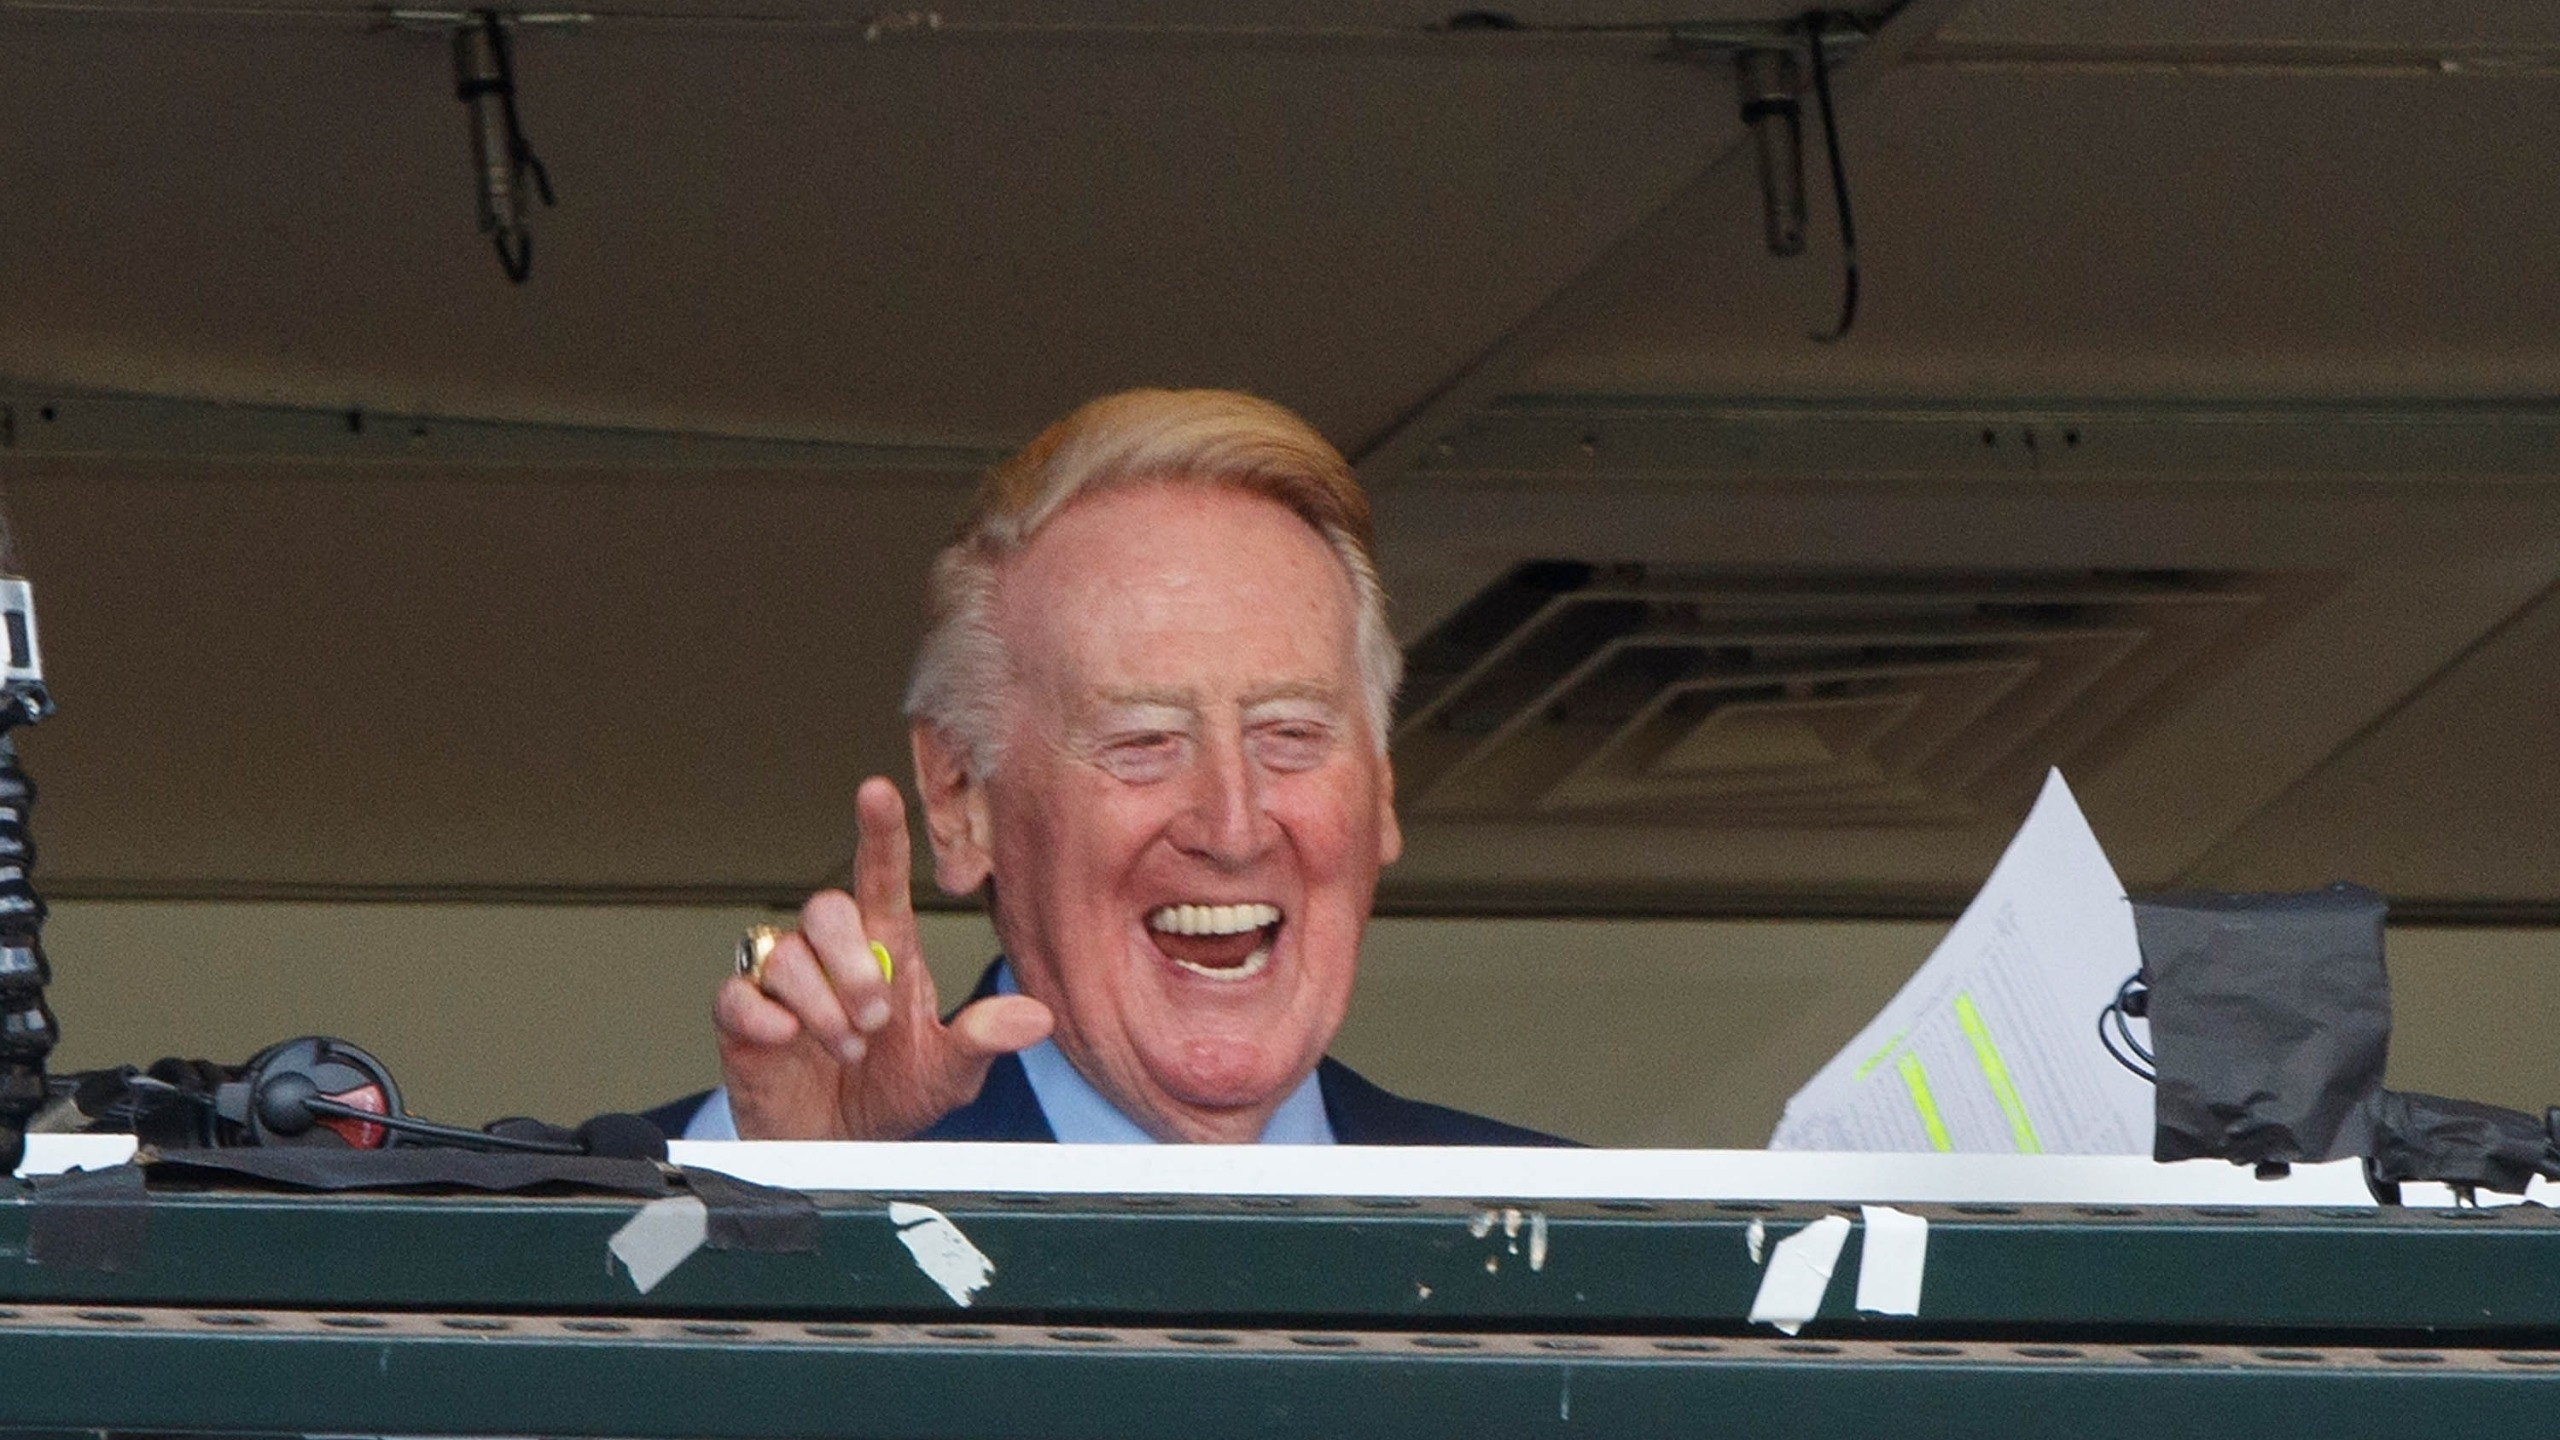 Vin Scully waves to fans in the broadcast booth before the game between the San Francisco Giants and the Los Angeles Dodgers at AT&T Park on October 2, 2016, in San Francisco. (Jason O. Watson/Getty Images)